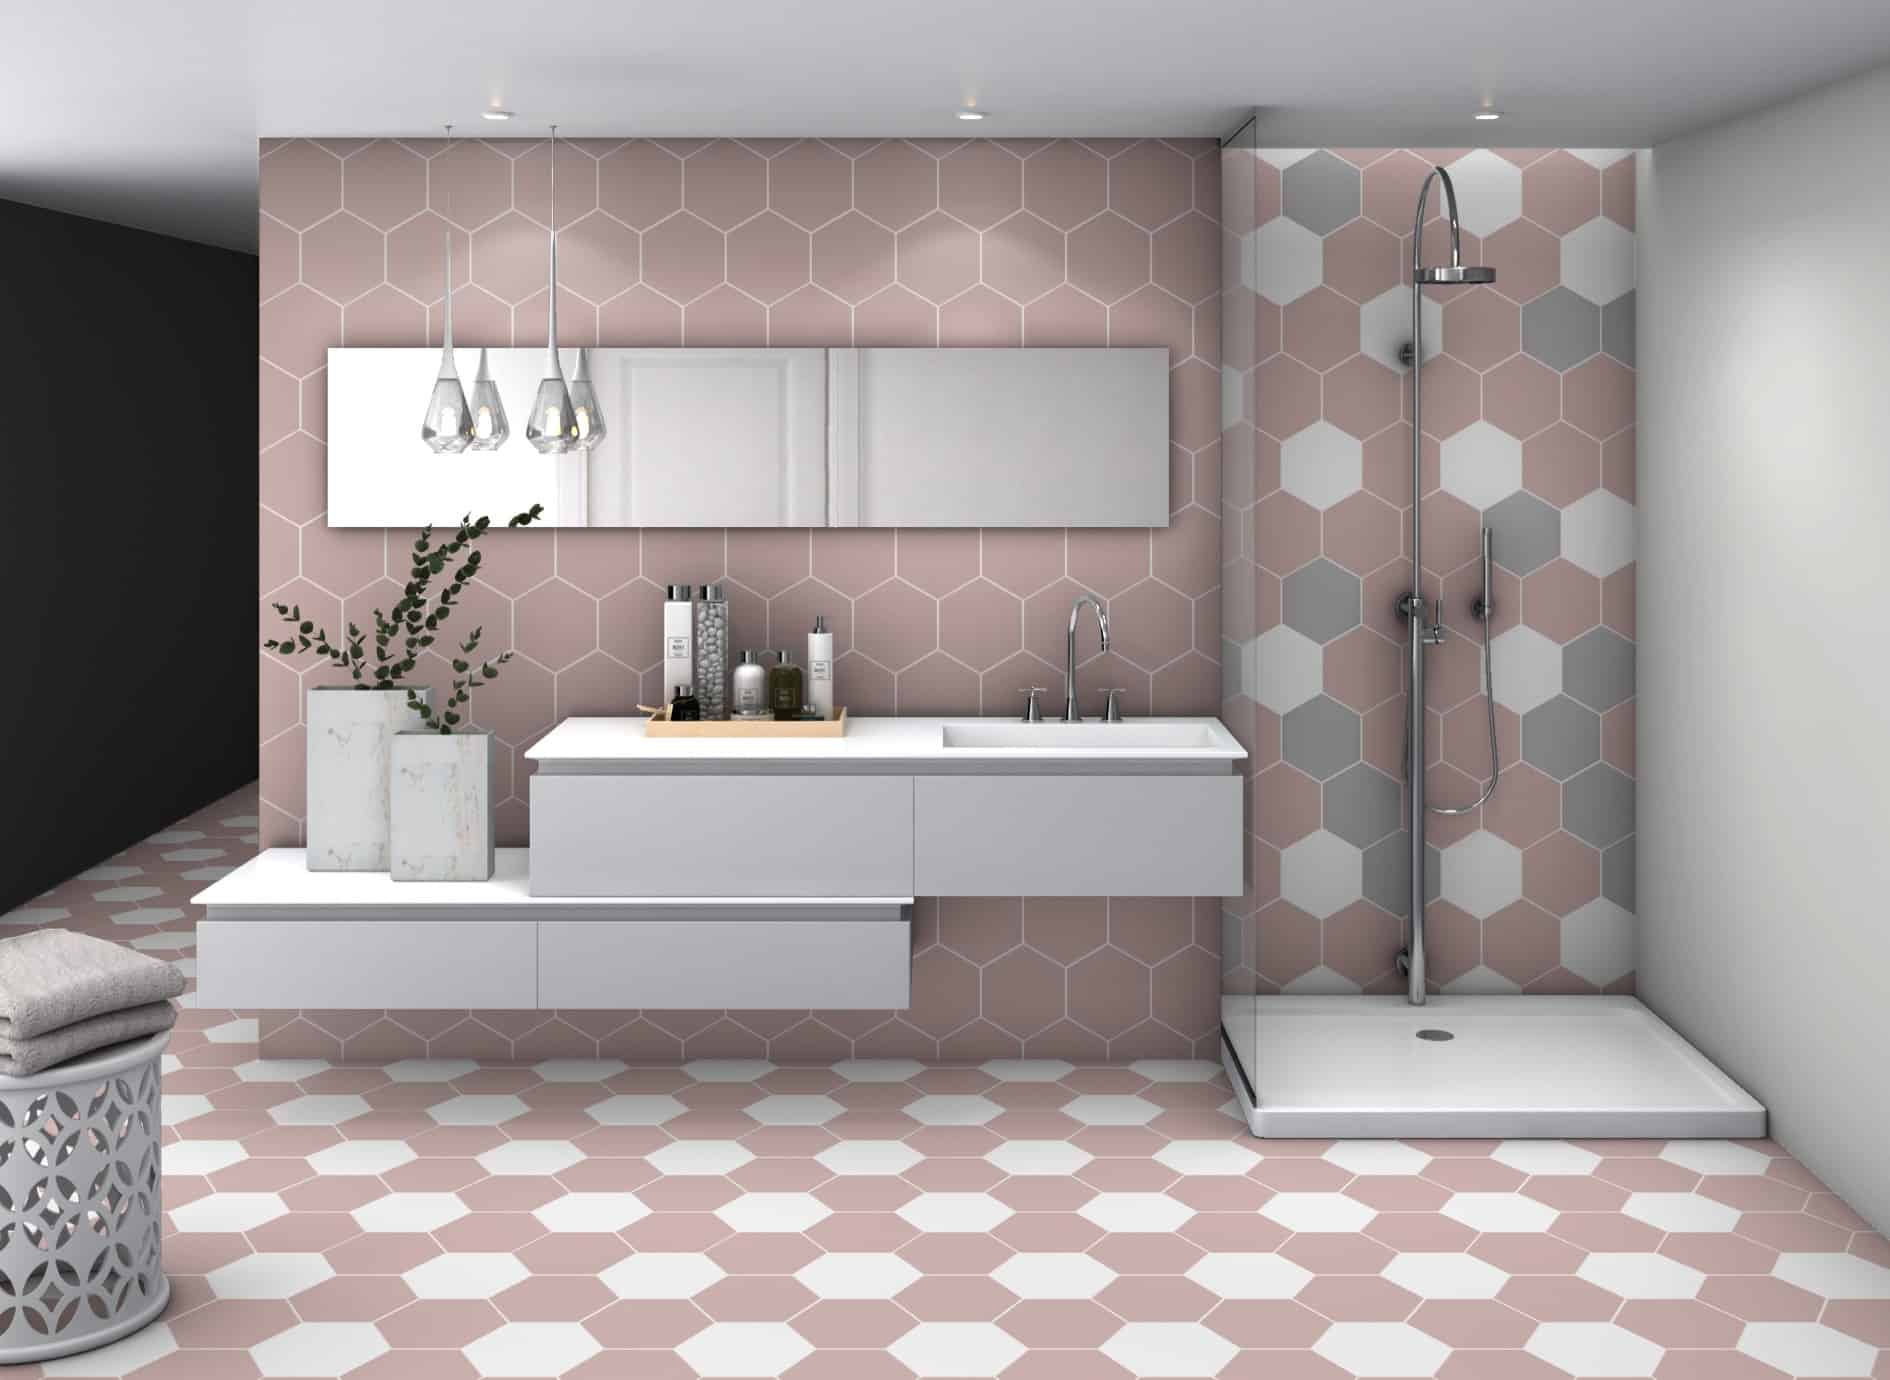 Pink | Rose  Hexagon tile Deco basic hex Rose by Decobella tiles - South Africa . Ideal for features in a bathroom or kitchen and suitable for wall or floor application.  250x220mm